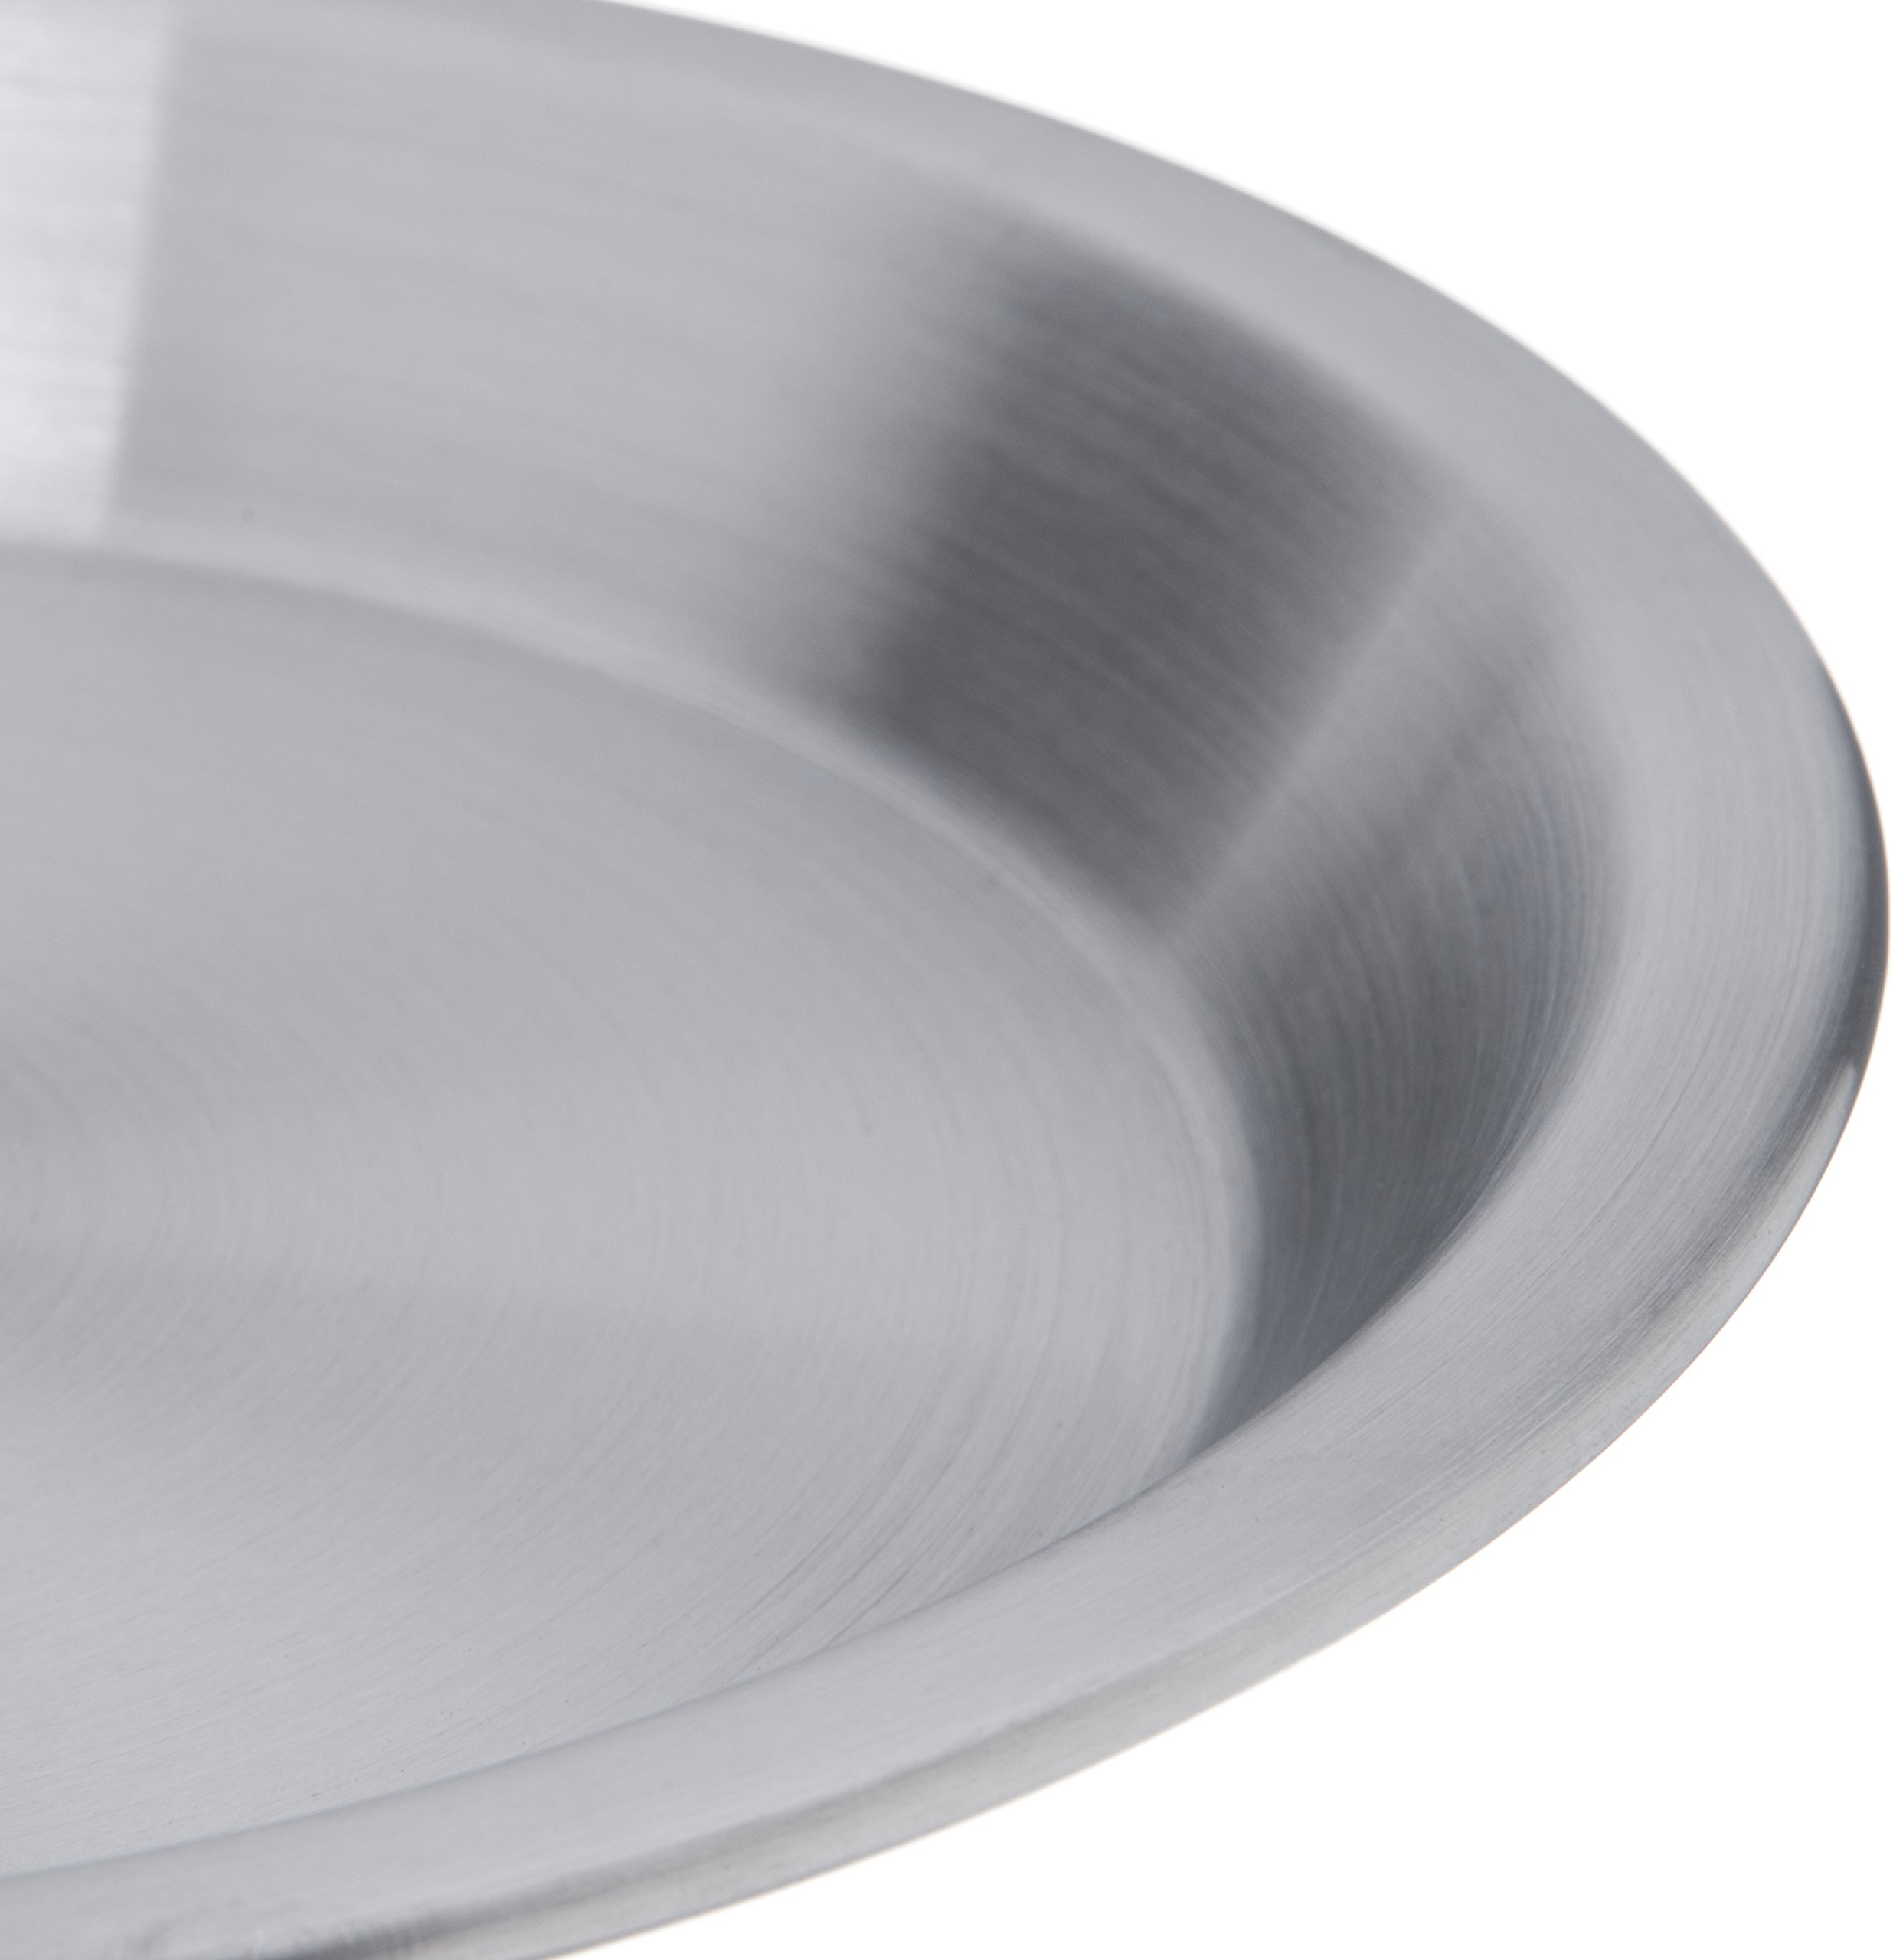 Carlisle 60322 Pie Pan, 9'', Aluminum (Pack of 24) by Carlisle (Image #3)